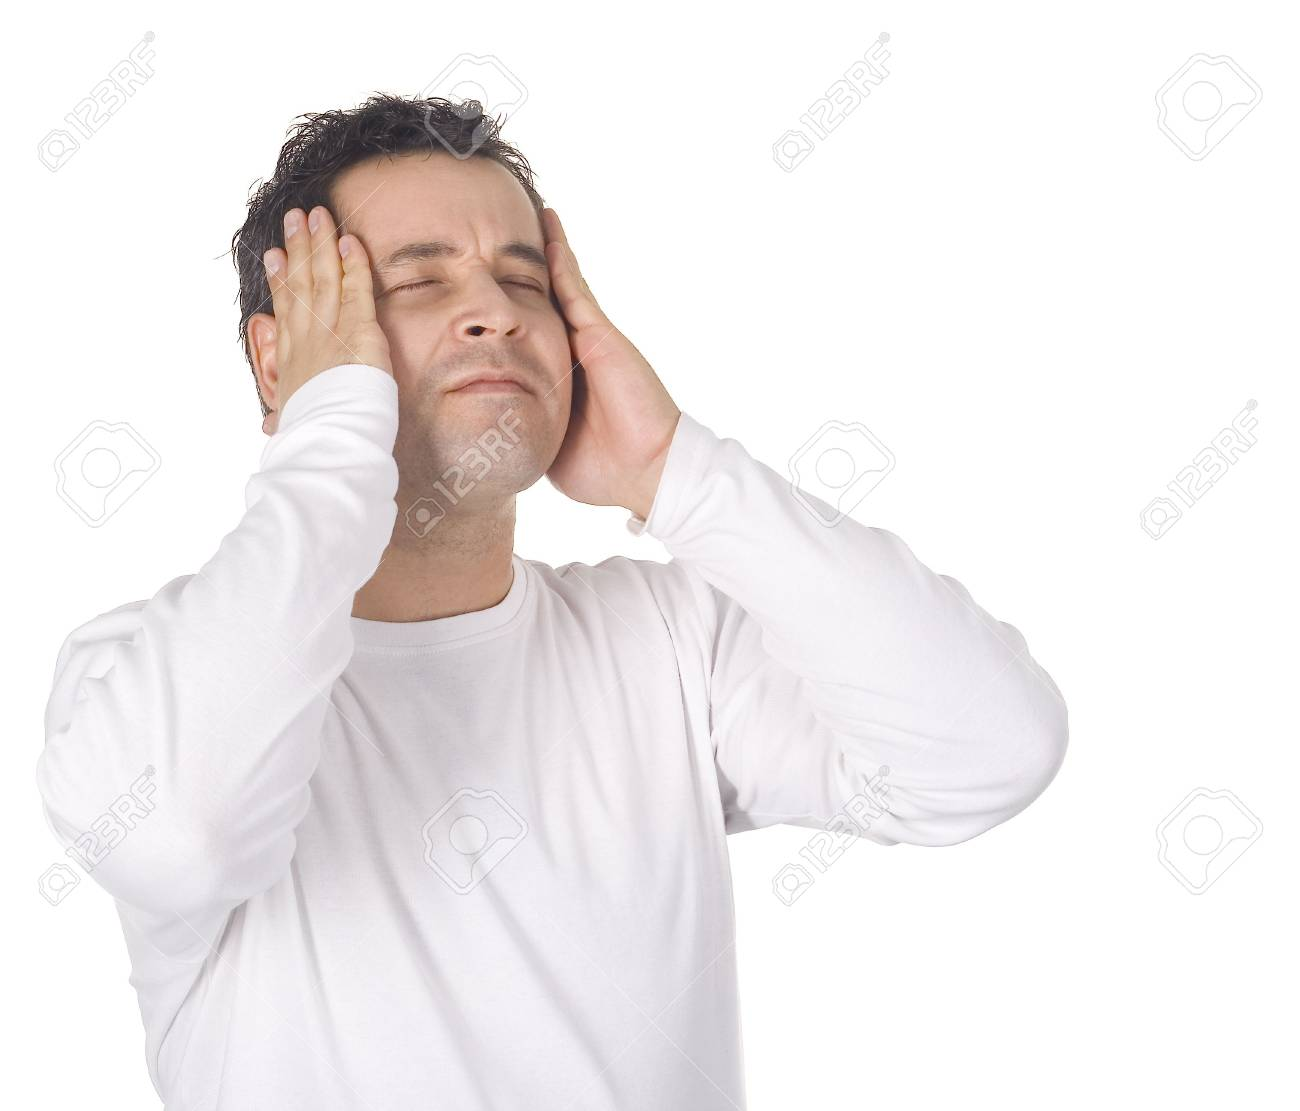 Portrait of a young man with a headache Stock Photo - 6419246